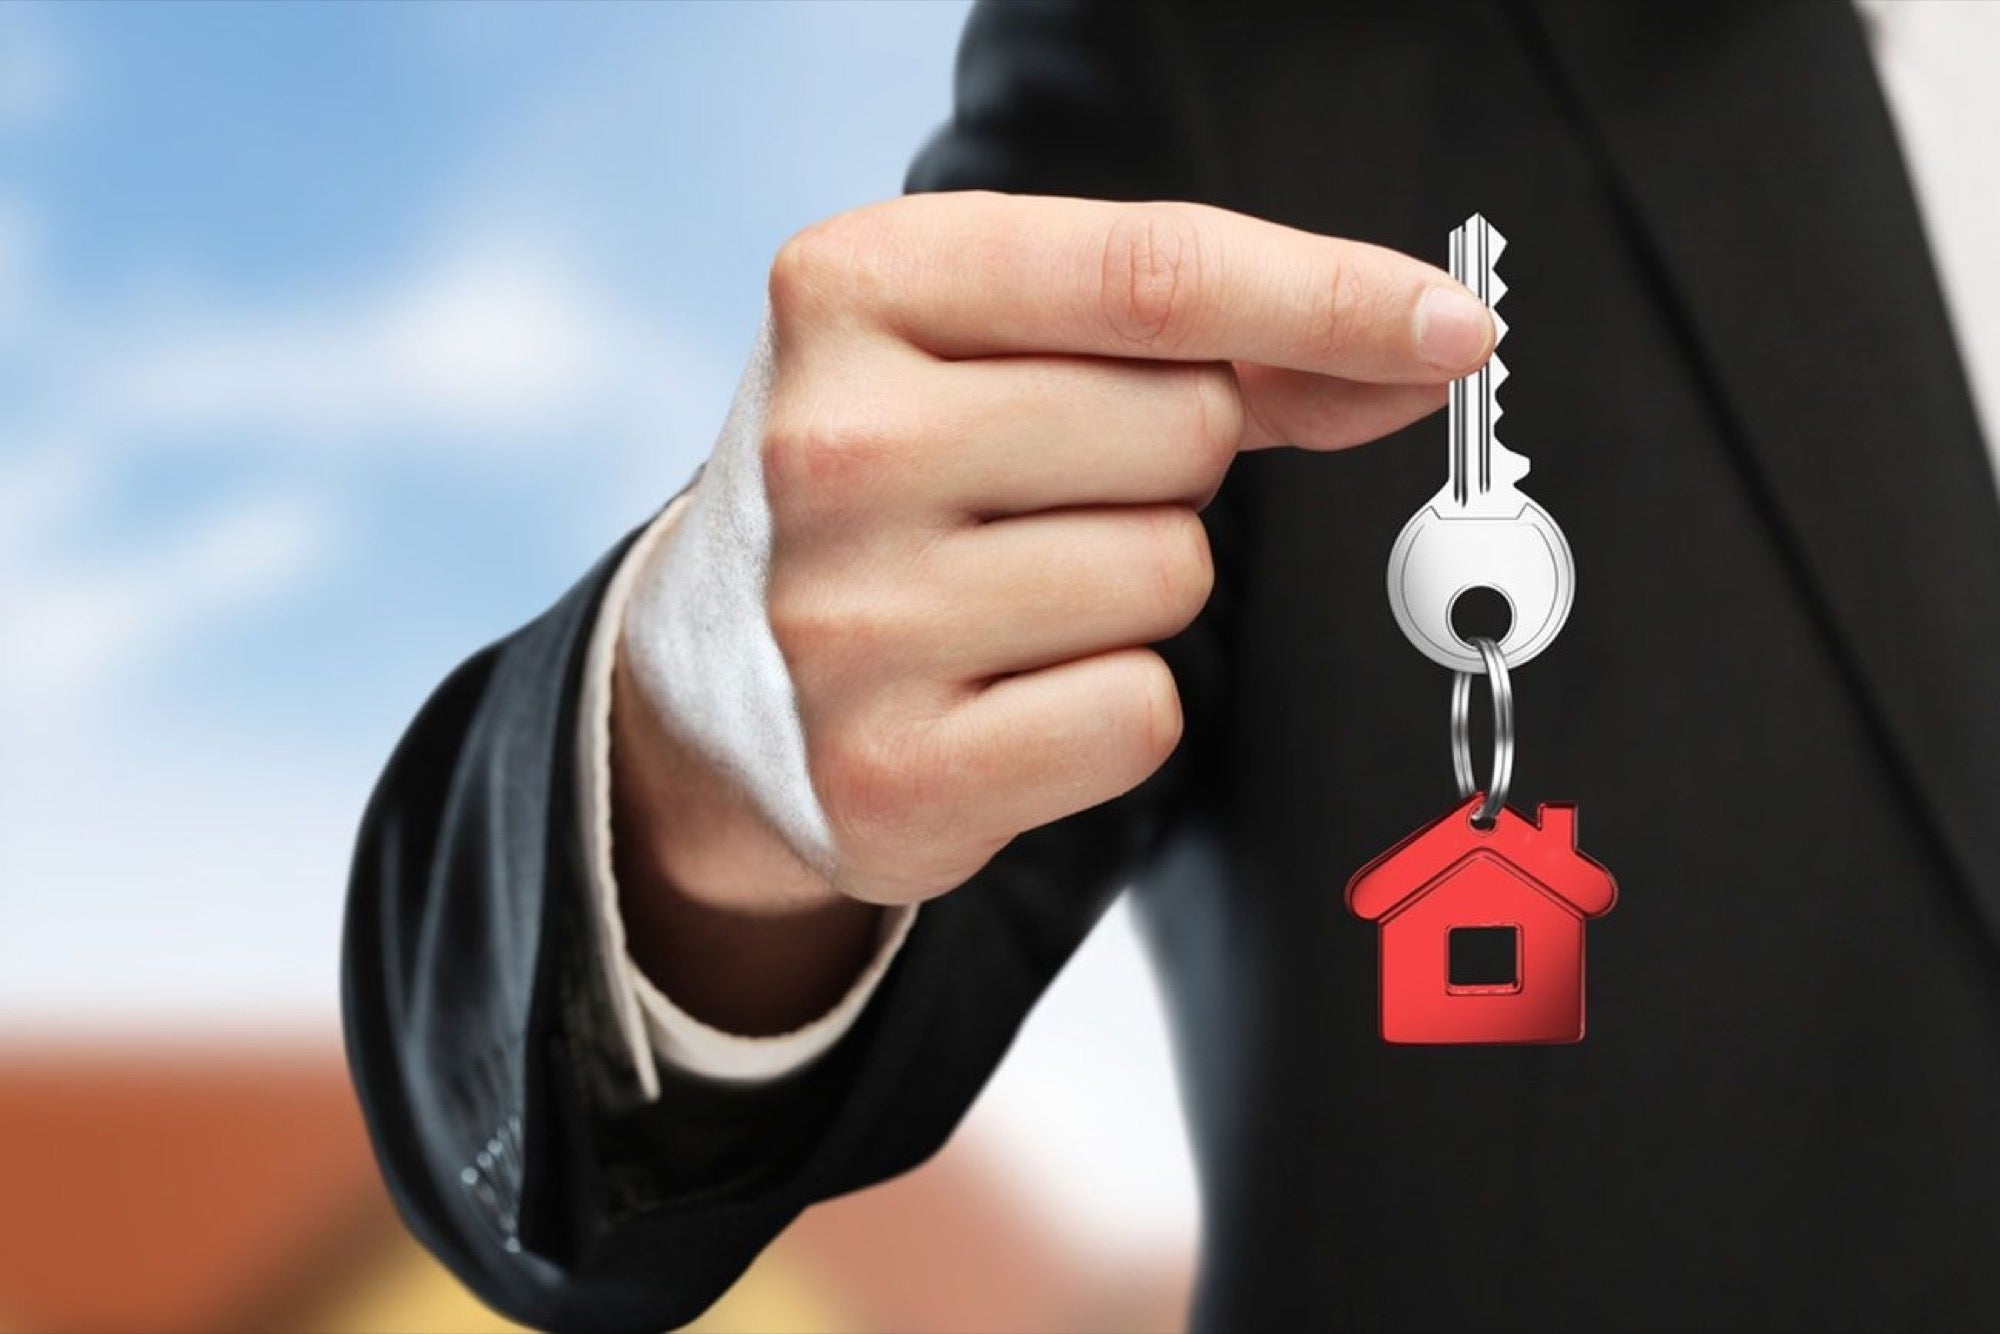 Increase your property value with these   simple hacks